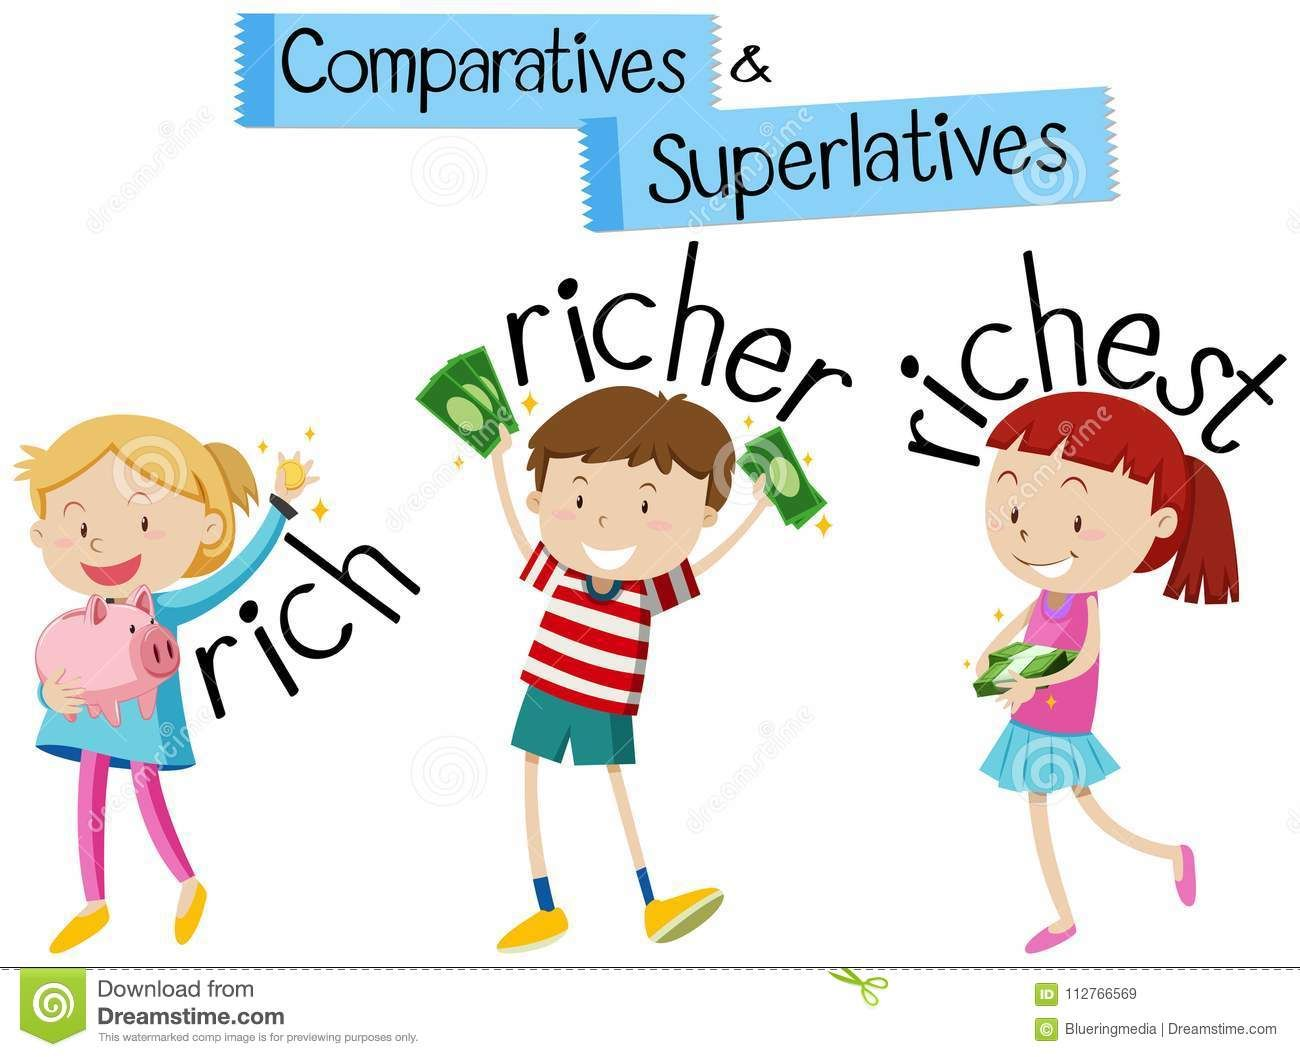 Grammar clipart english student. Illustration about for comparatives